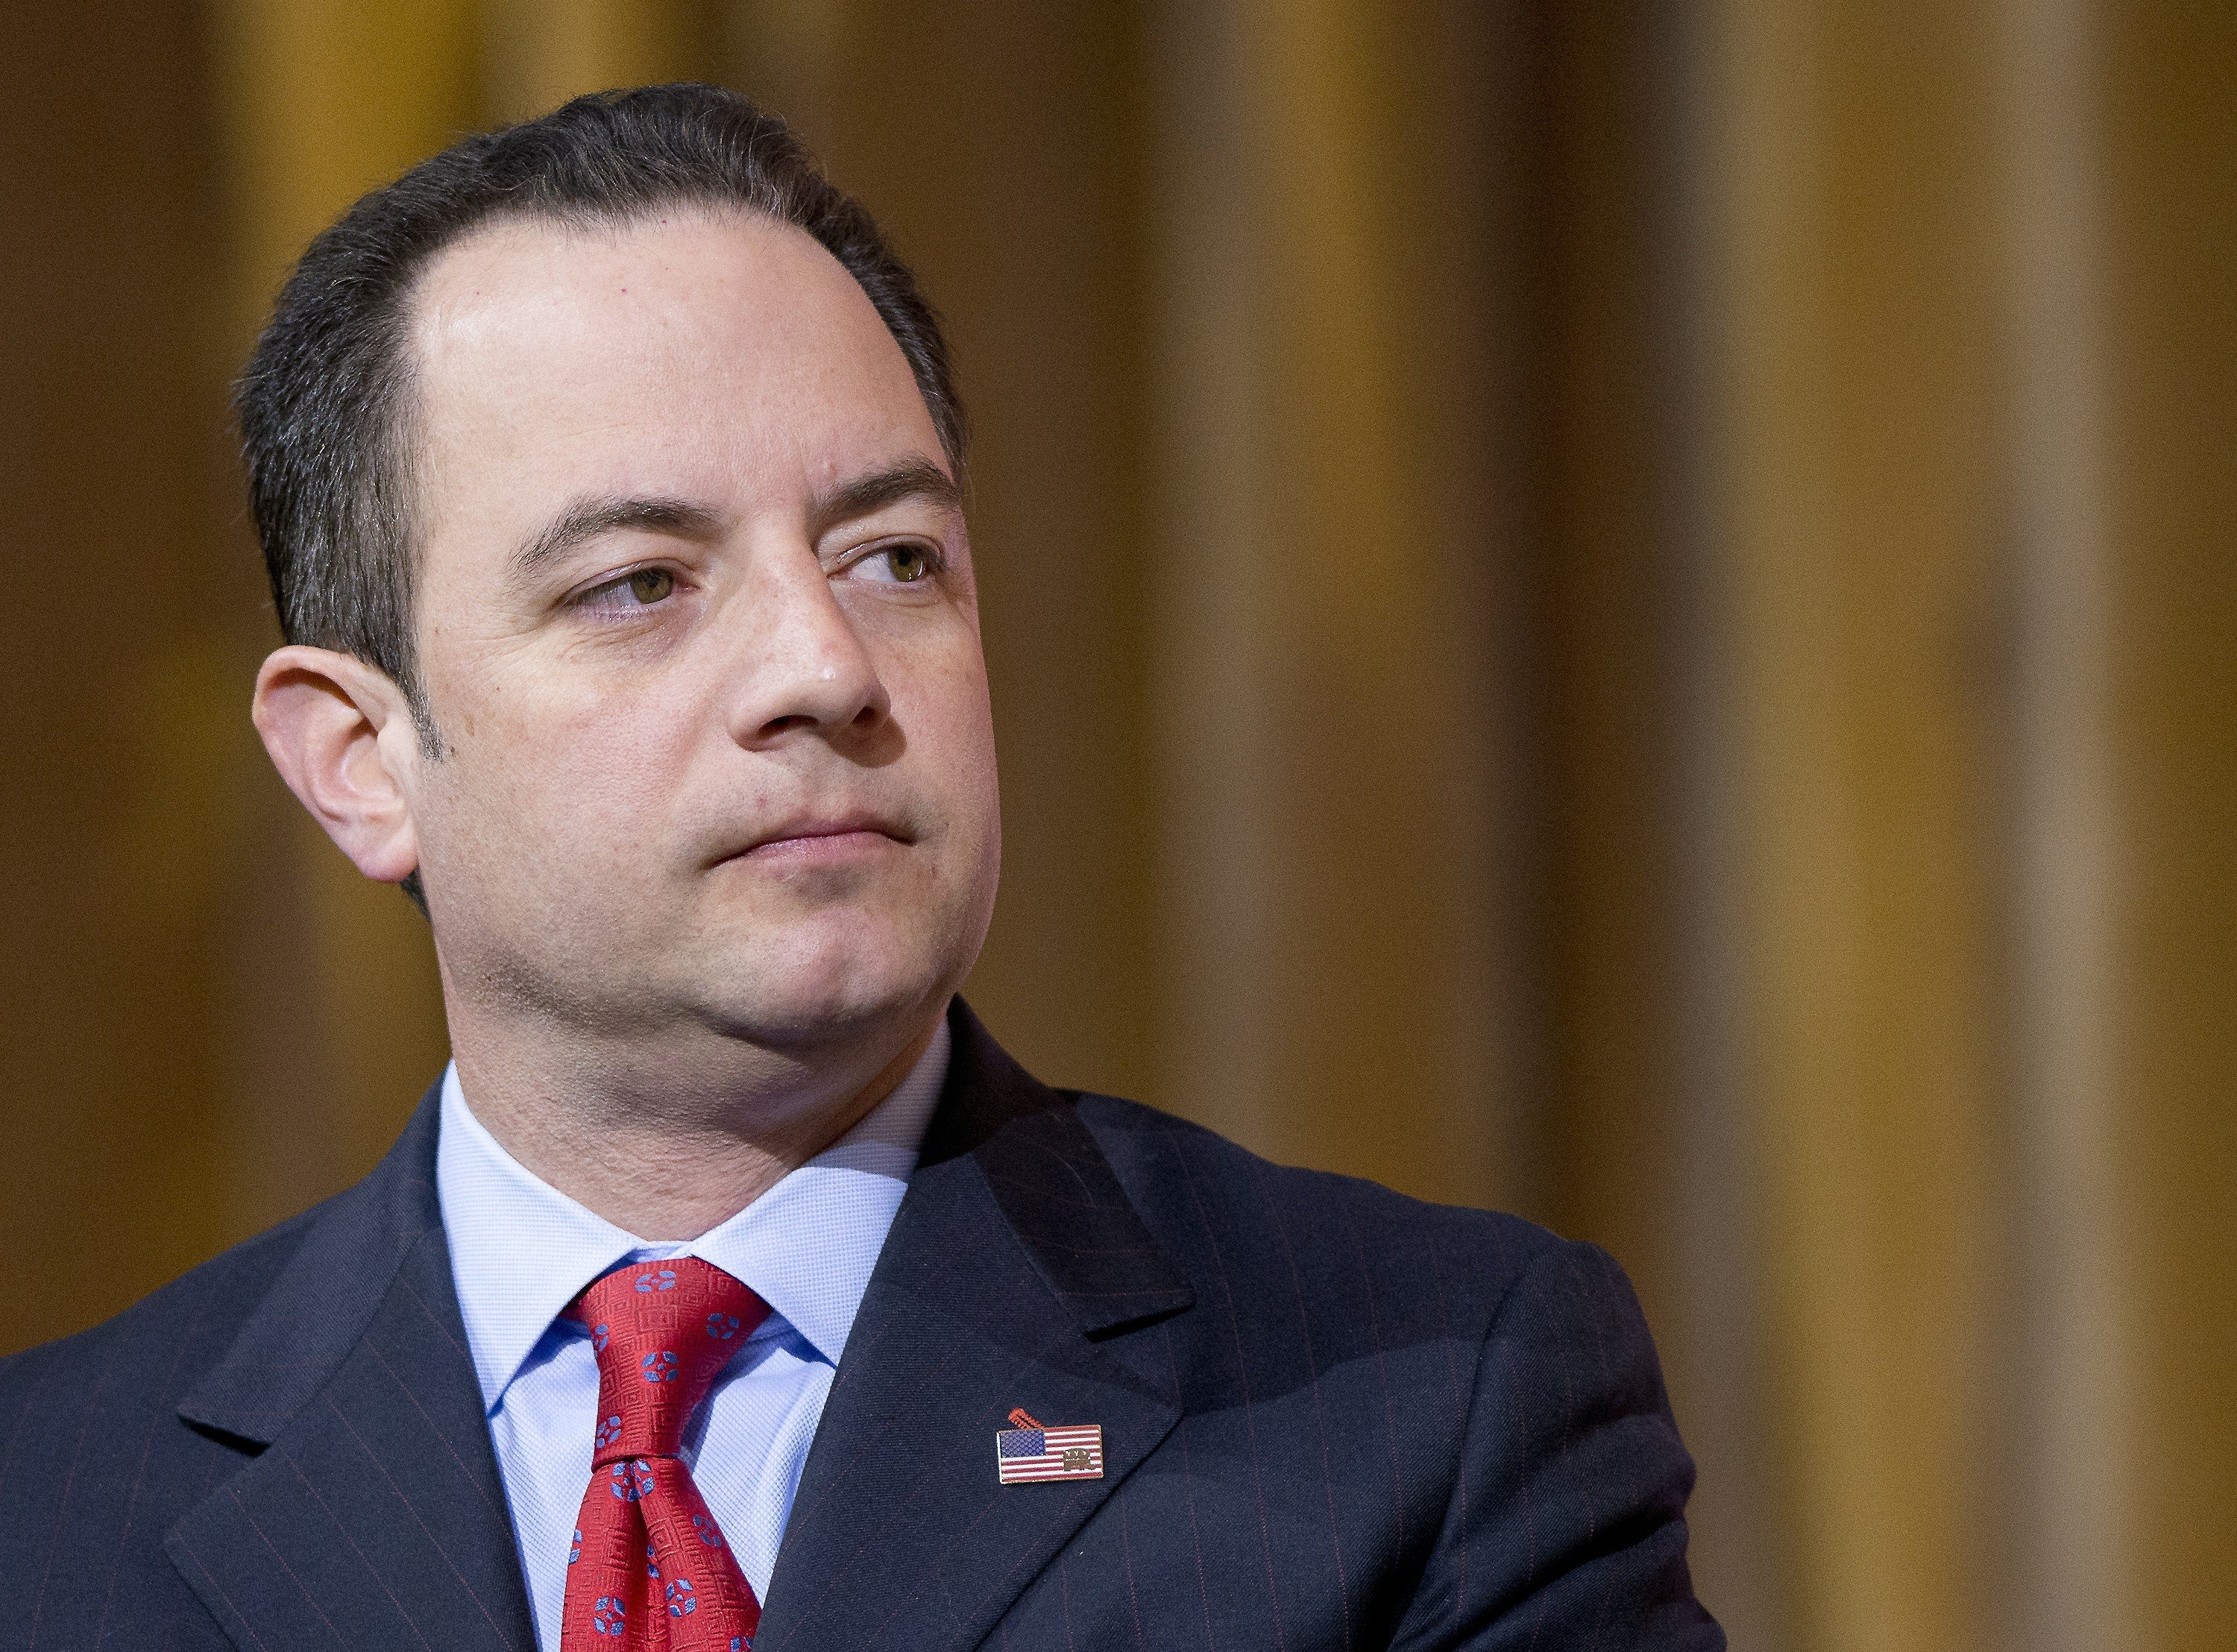 Reince Priebus, Chairman of the Republican National Committee, participates on a panel at the Conservative Political Action Conference at the Gaylord National at National Harbor, Md., March 8, 2014.